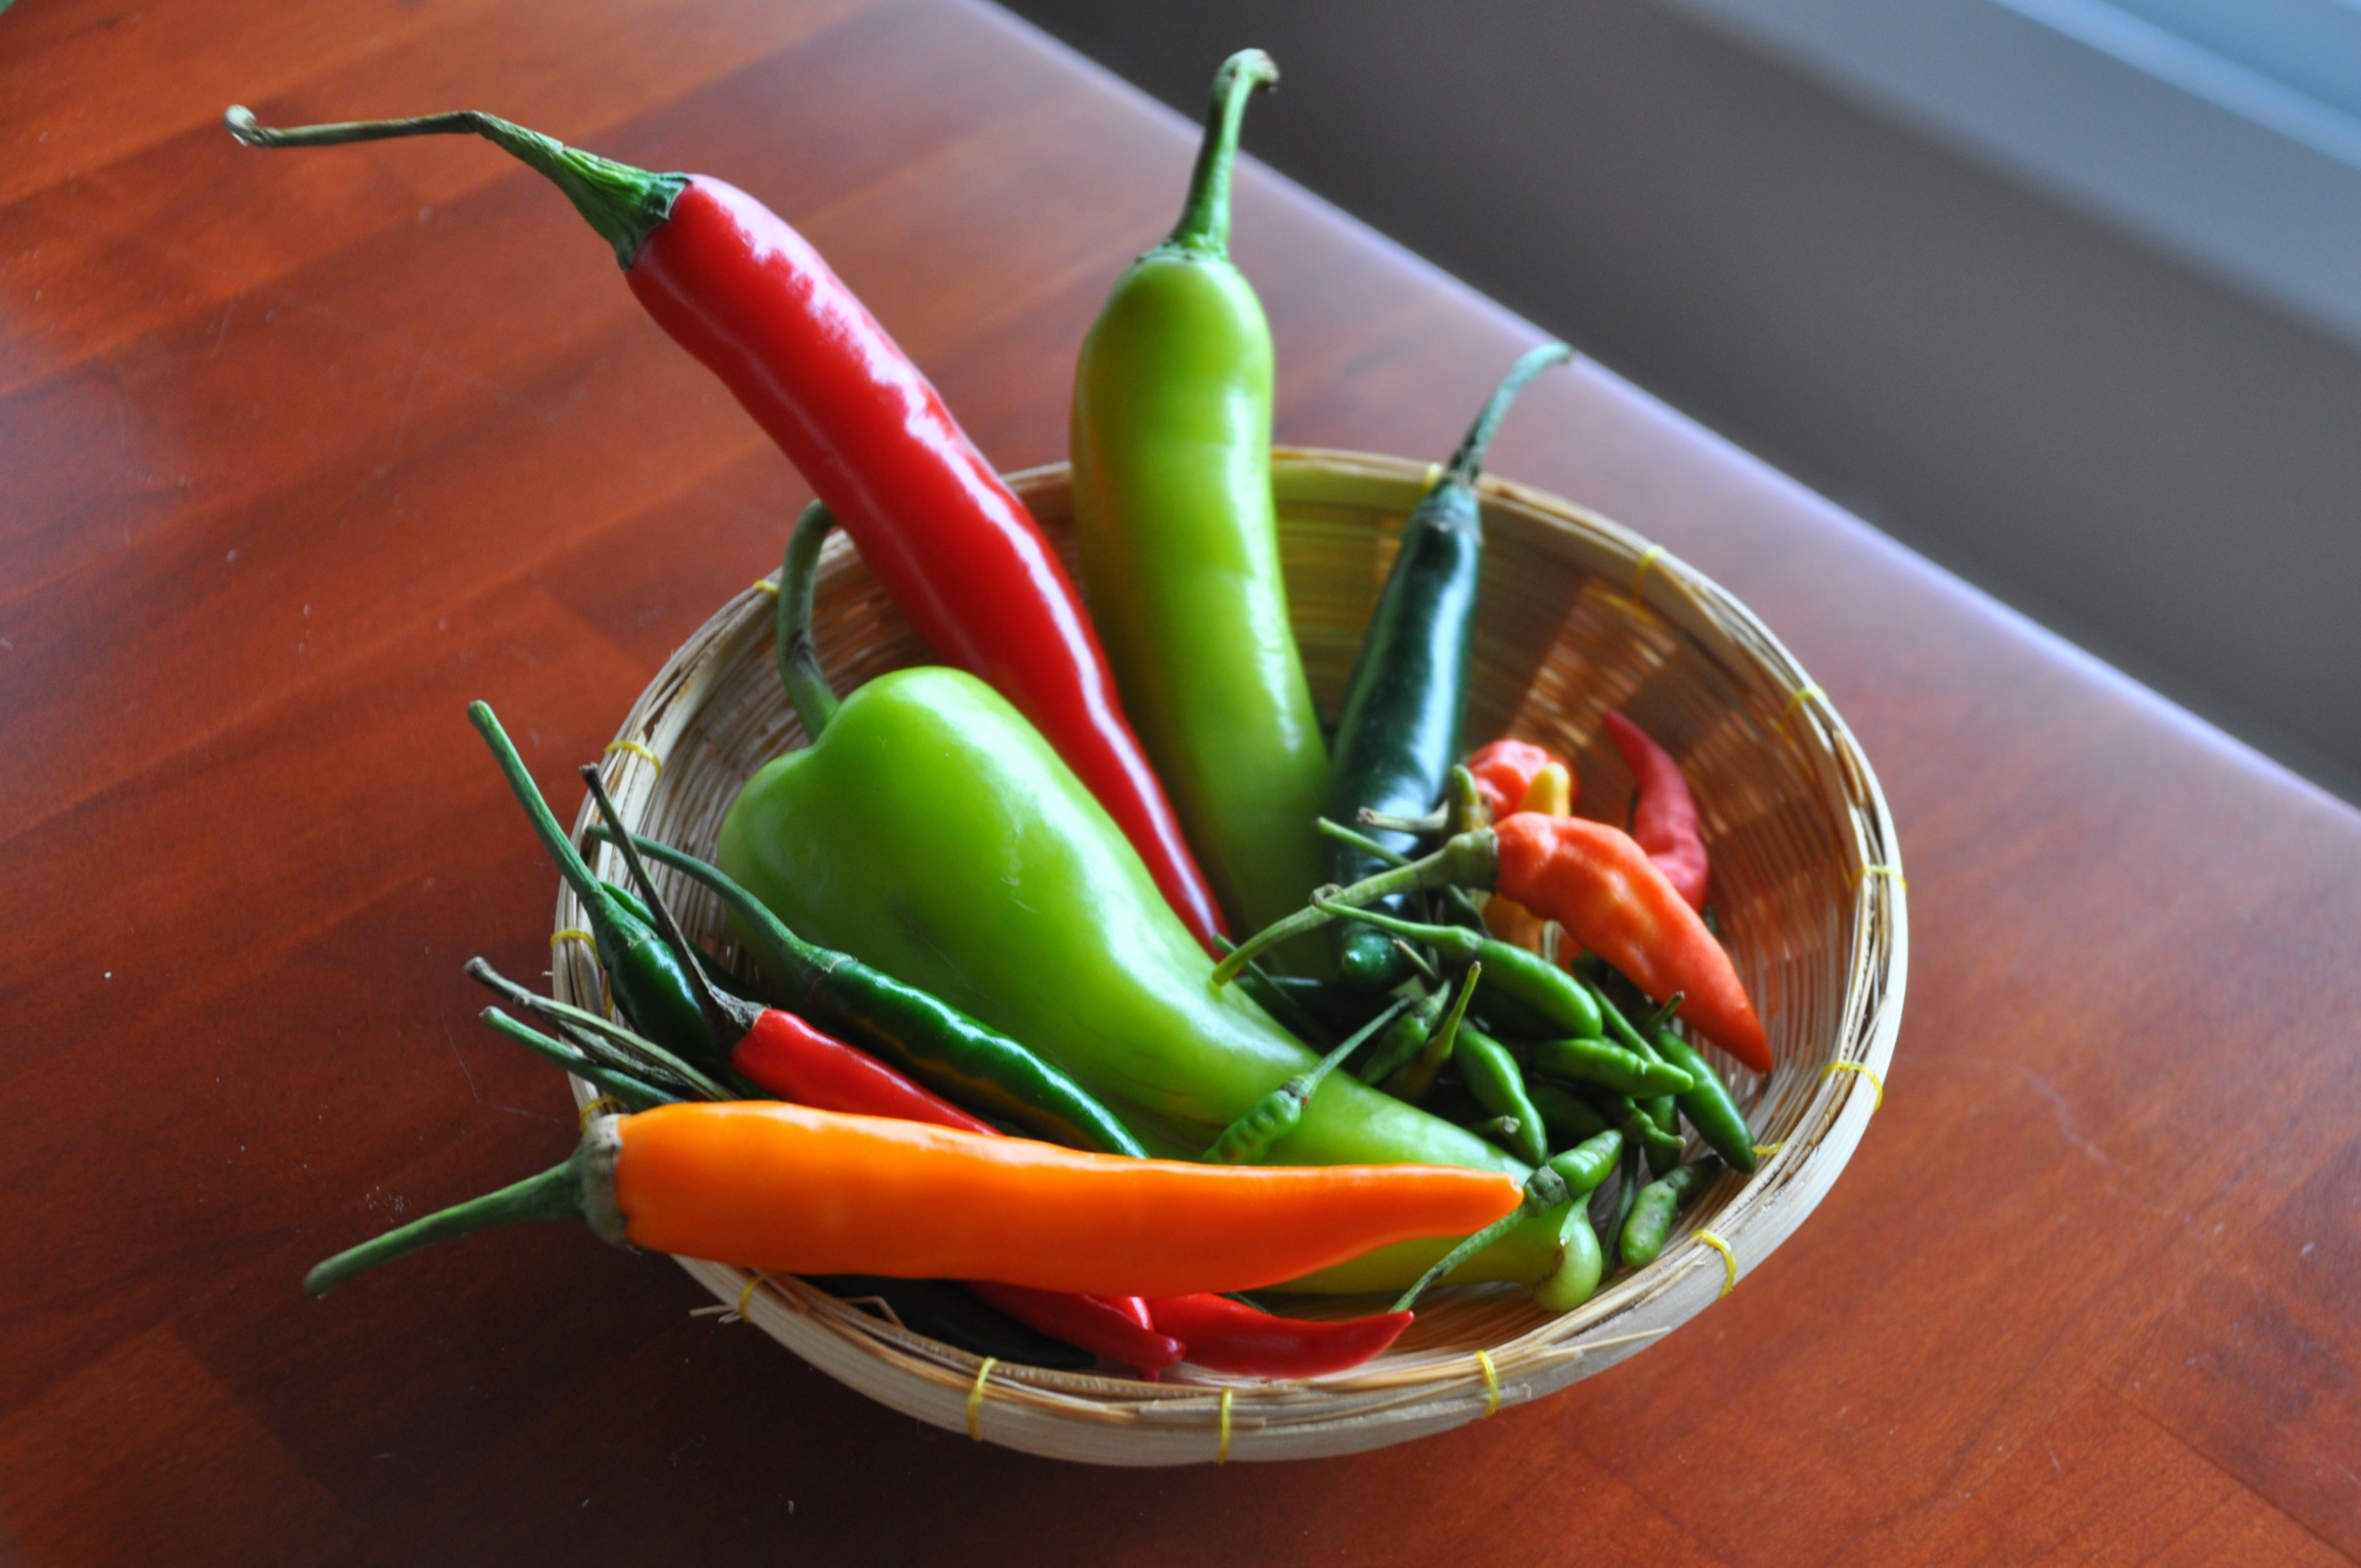 SEEDS OF BEST YELLOW THAI CHILI PEPPER HOT COOKING VEGETABLE